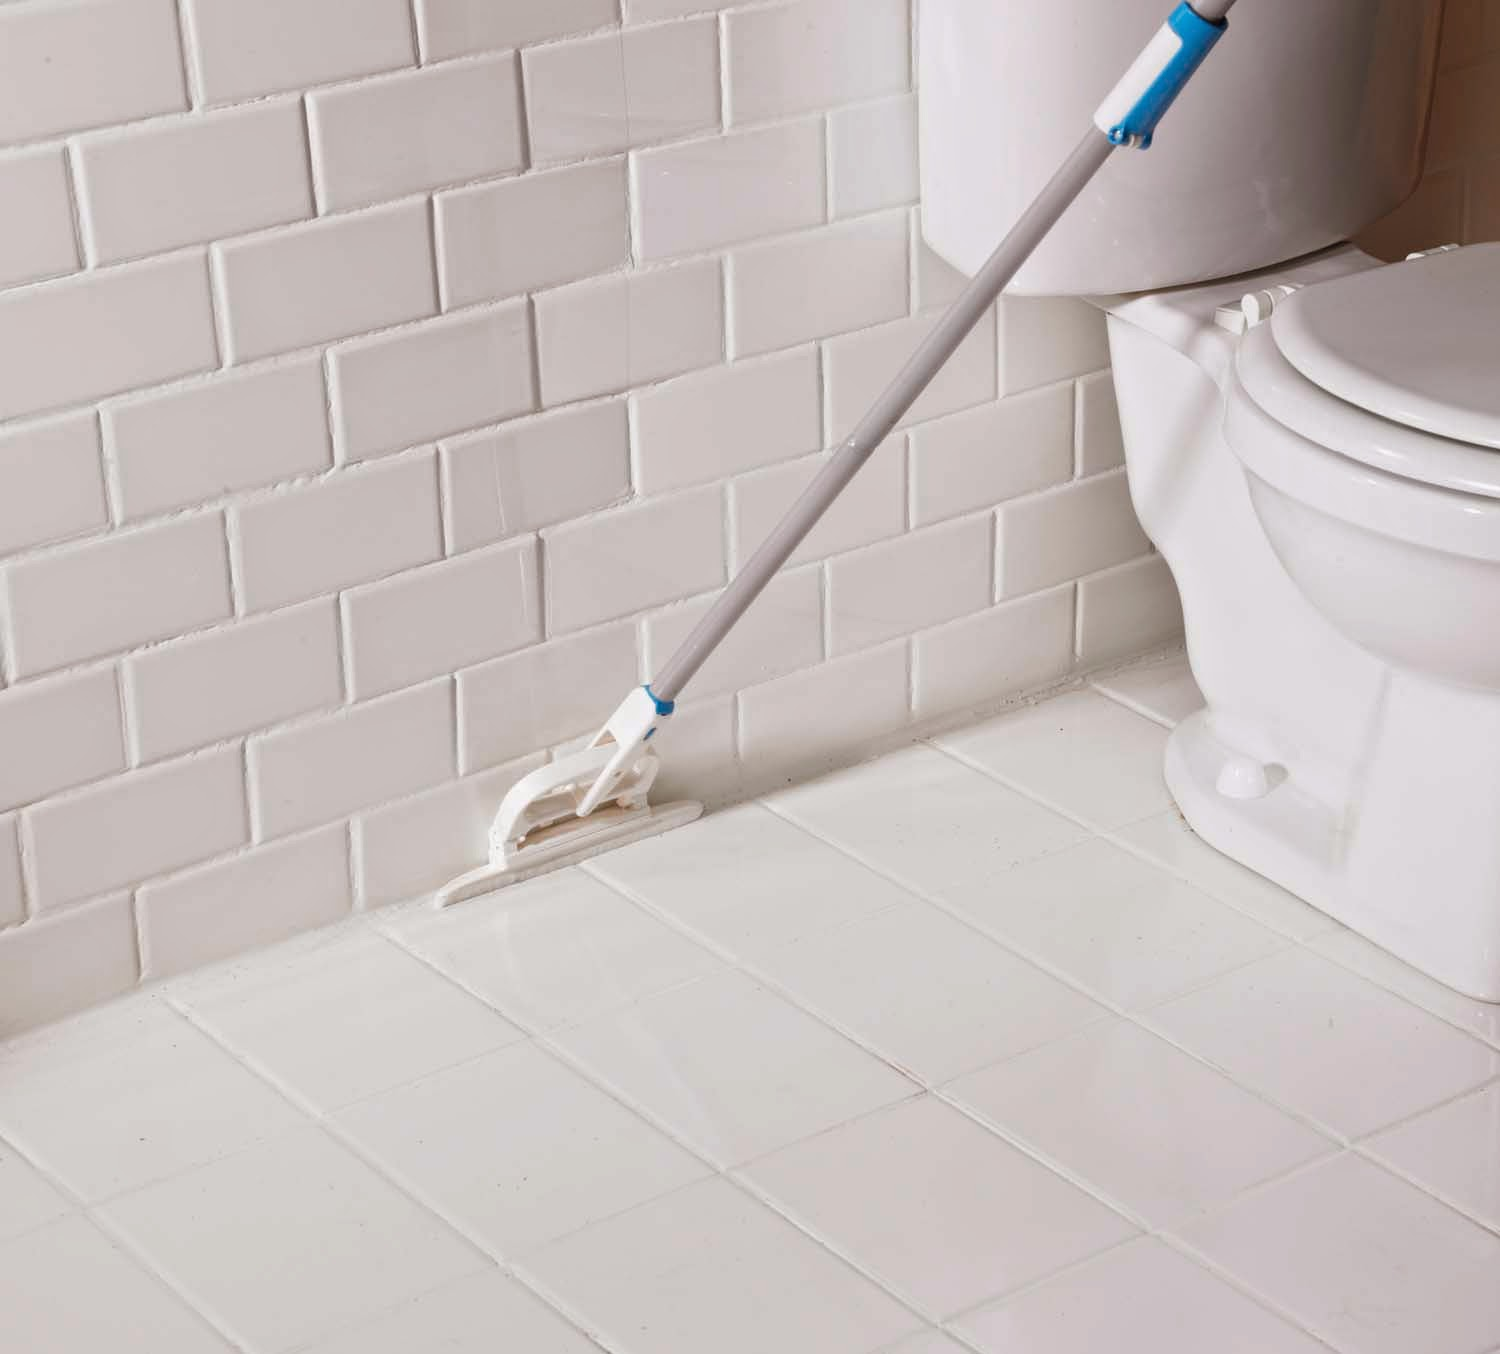 Cleaning Service The Machines Best Suited For Tile And